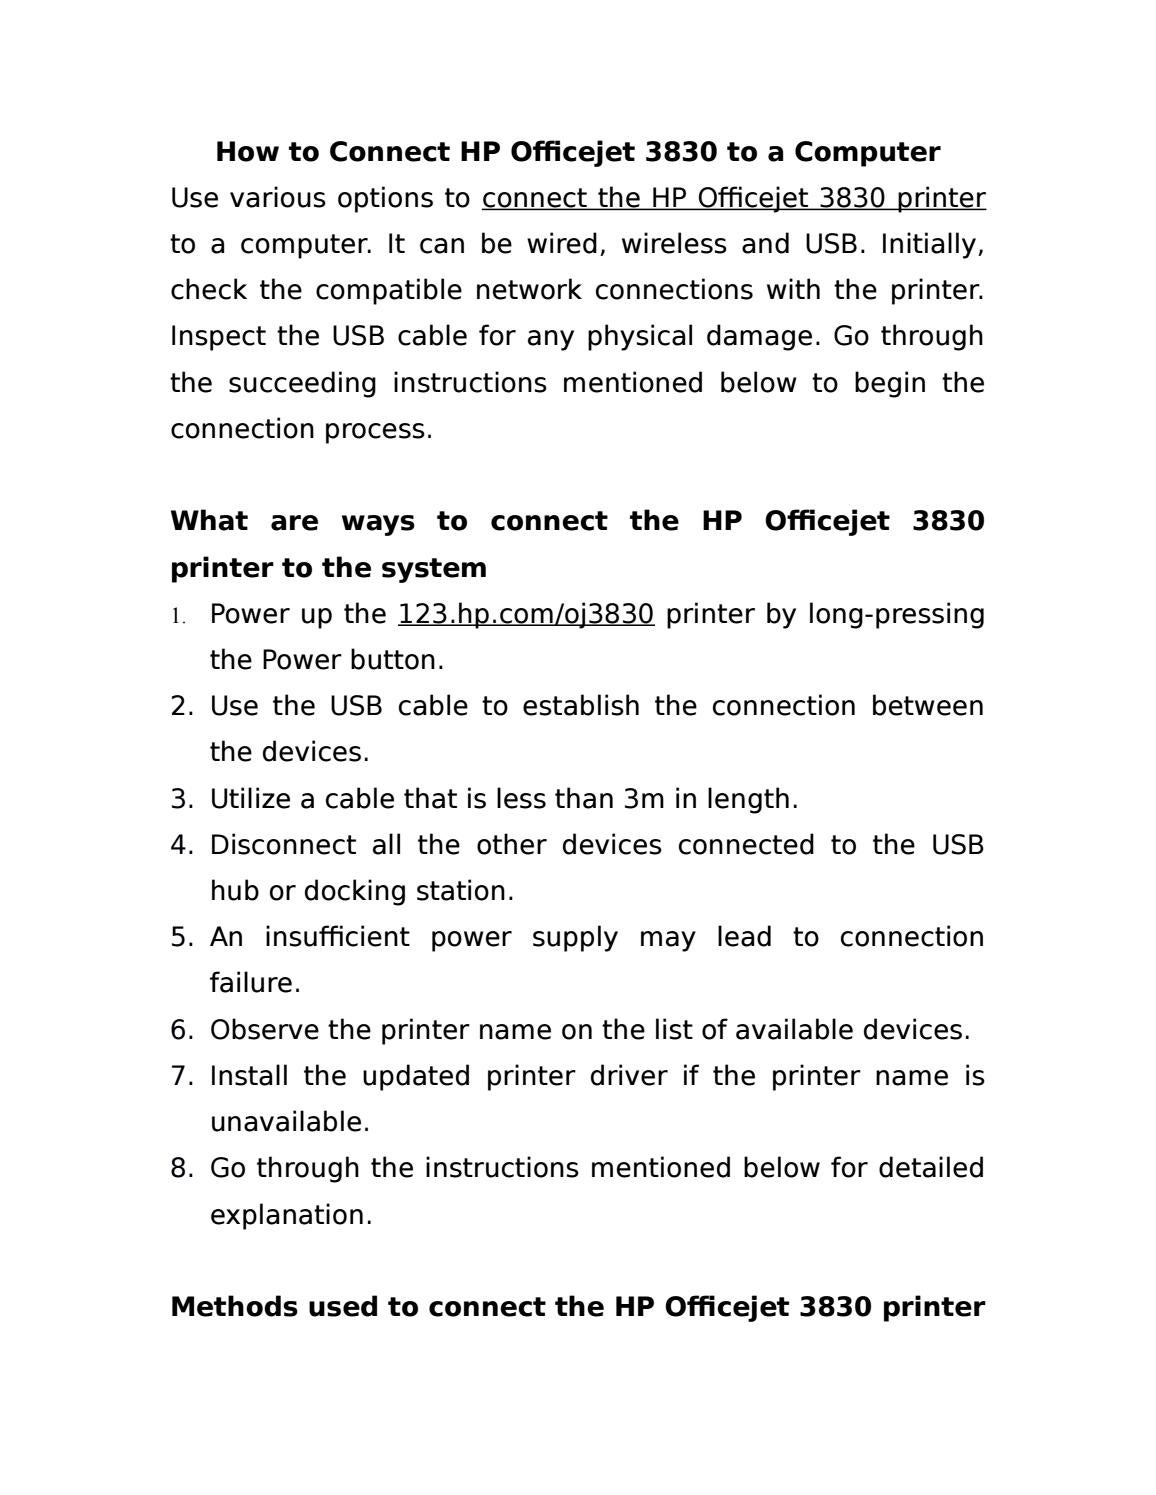 How to Connect HP Officejet 3830 to a Computer | 123 hp com